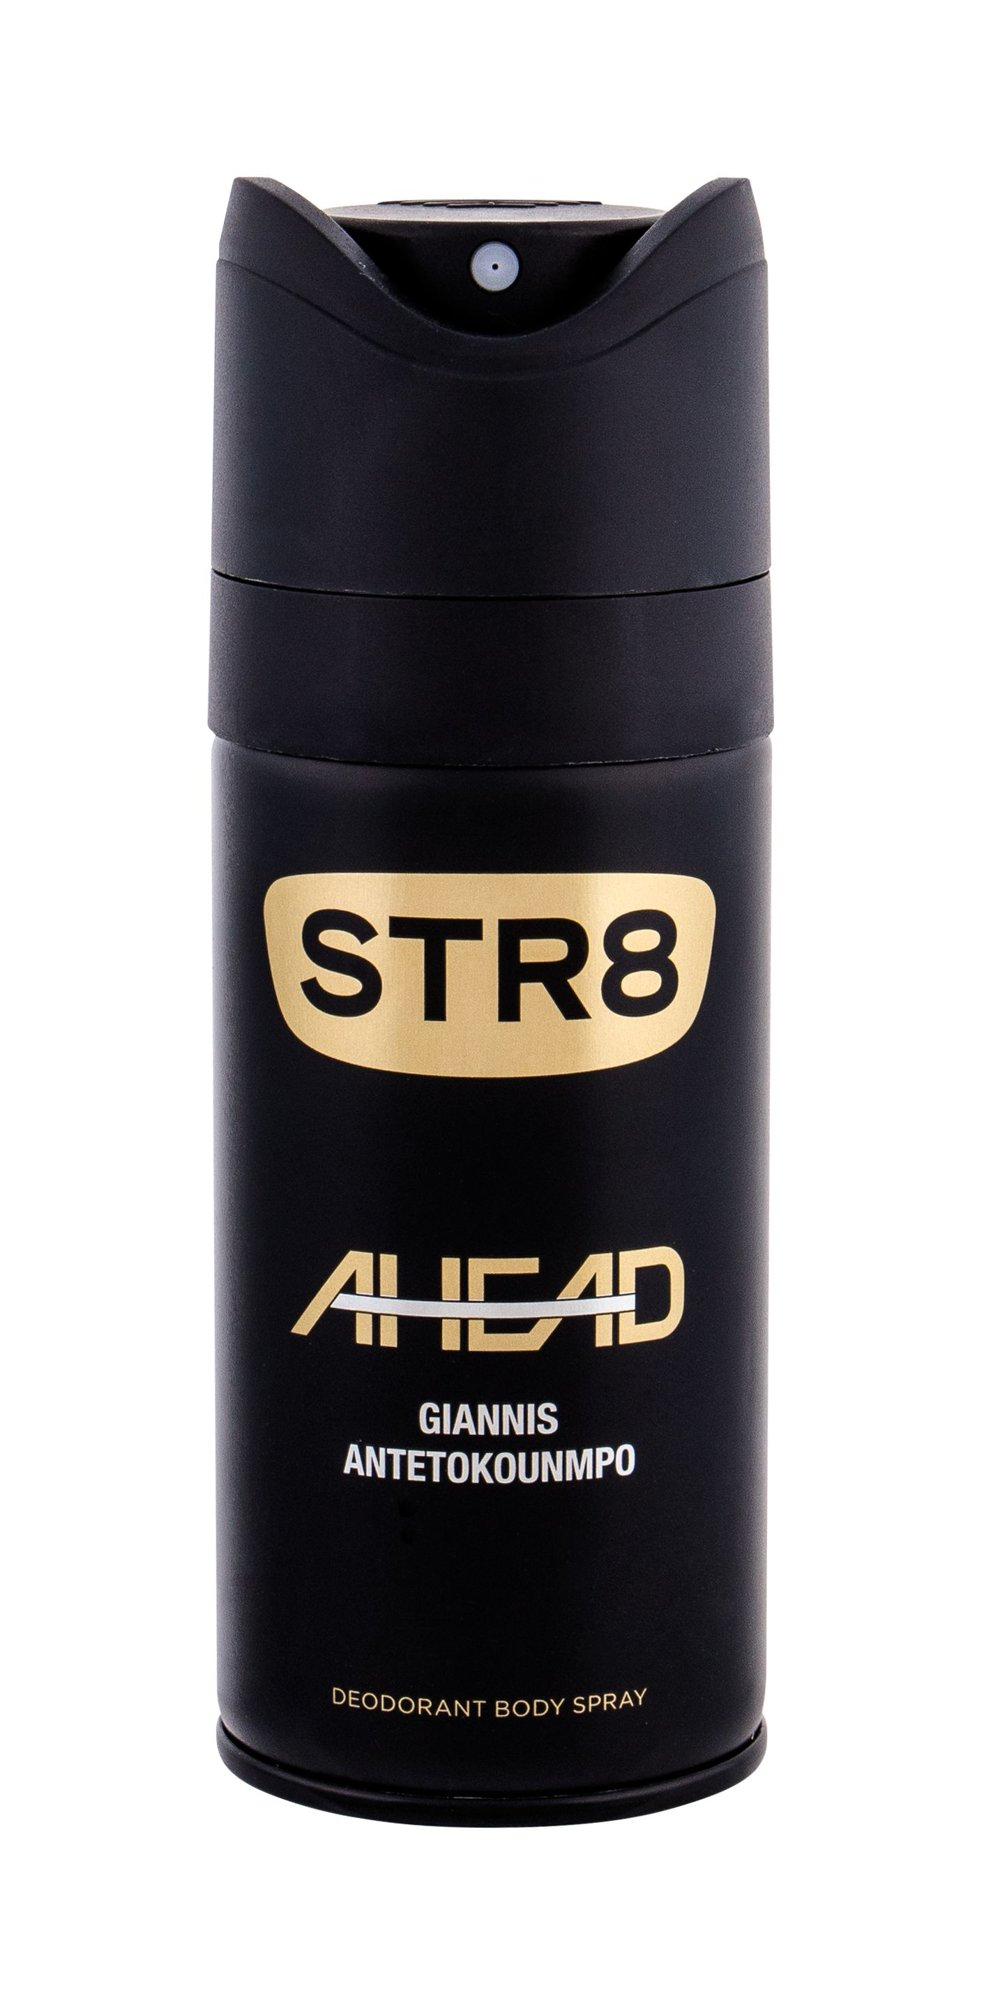 STR8 Ahead Deodorant 150ml